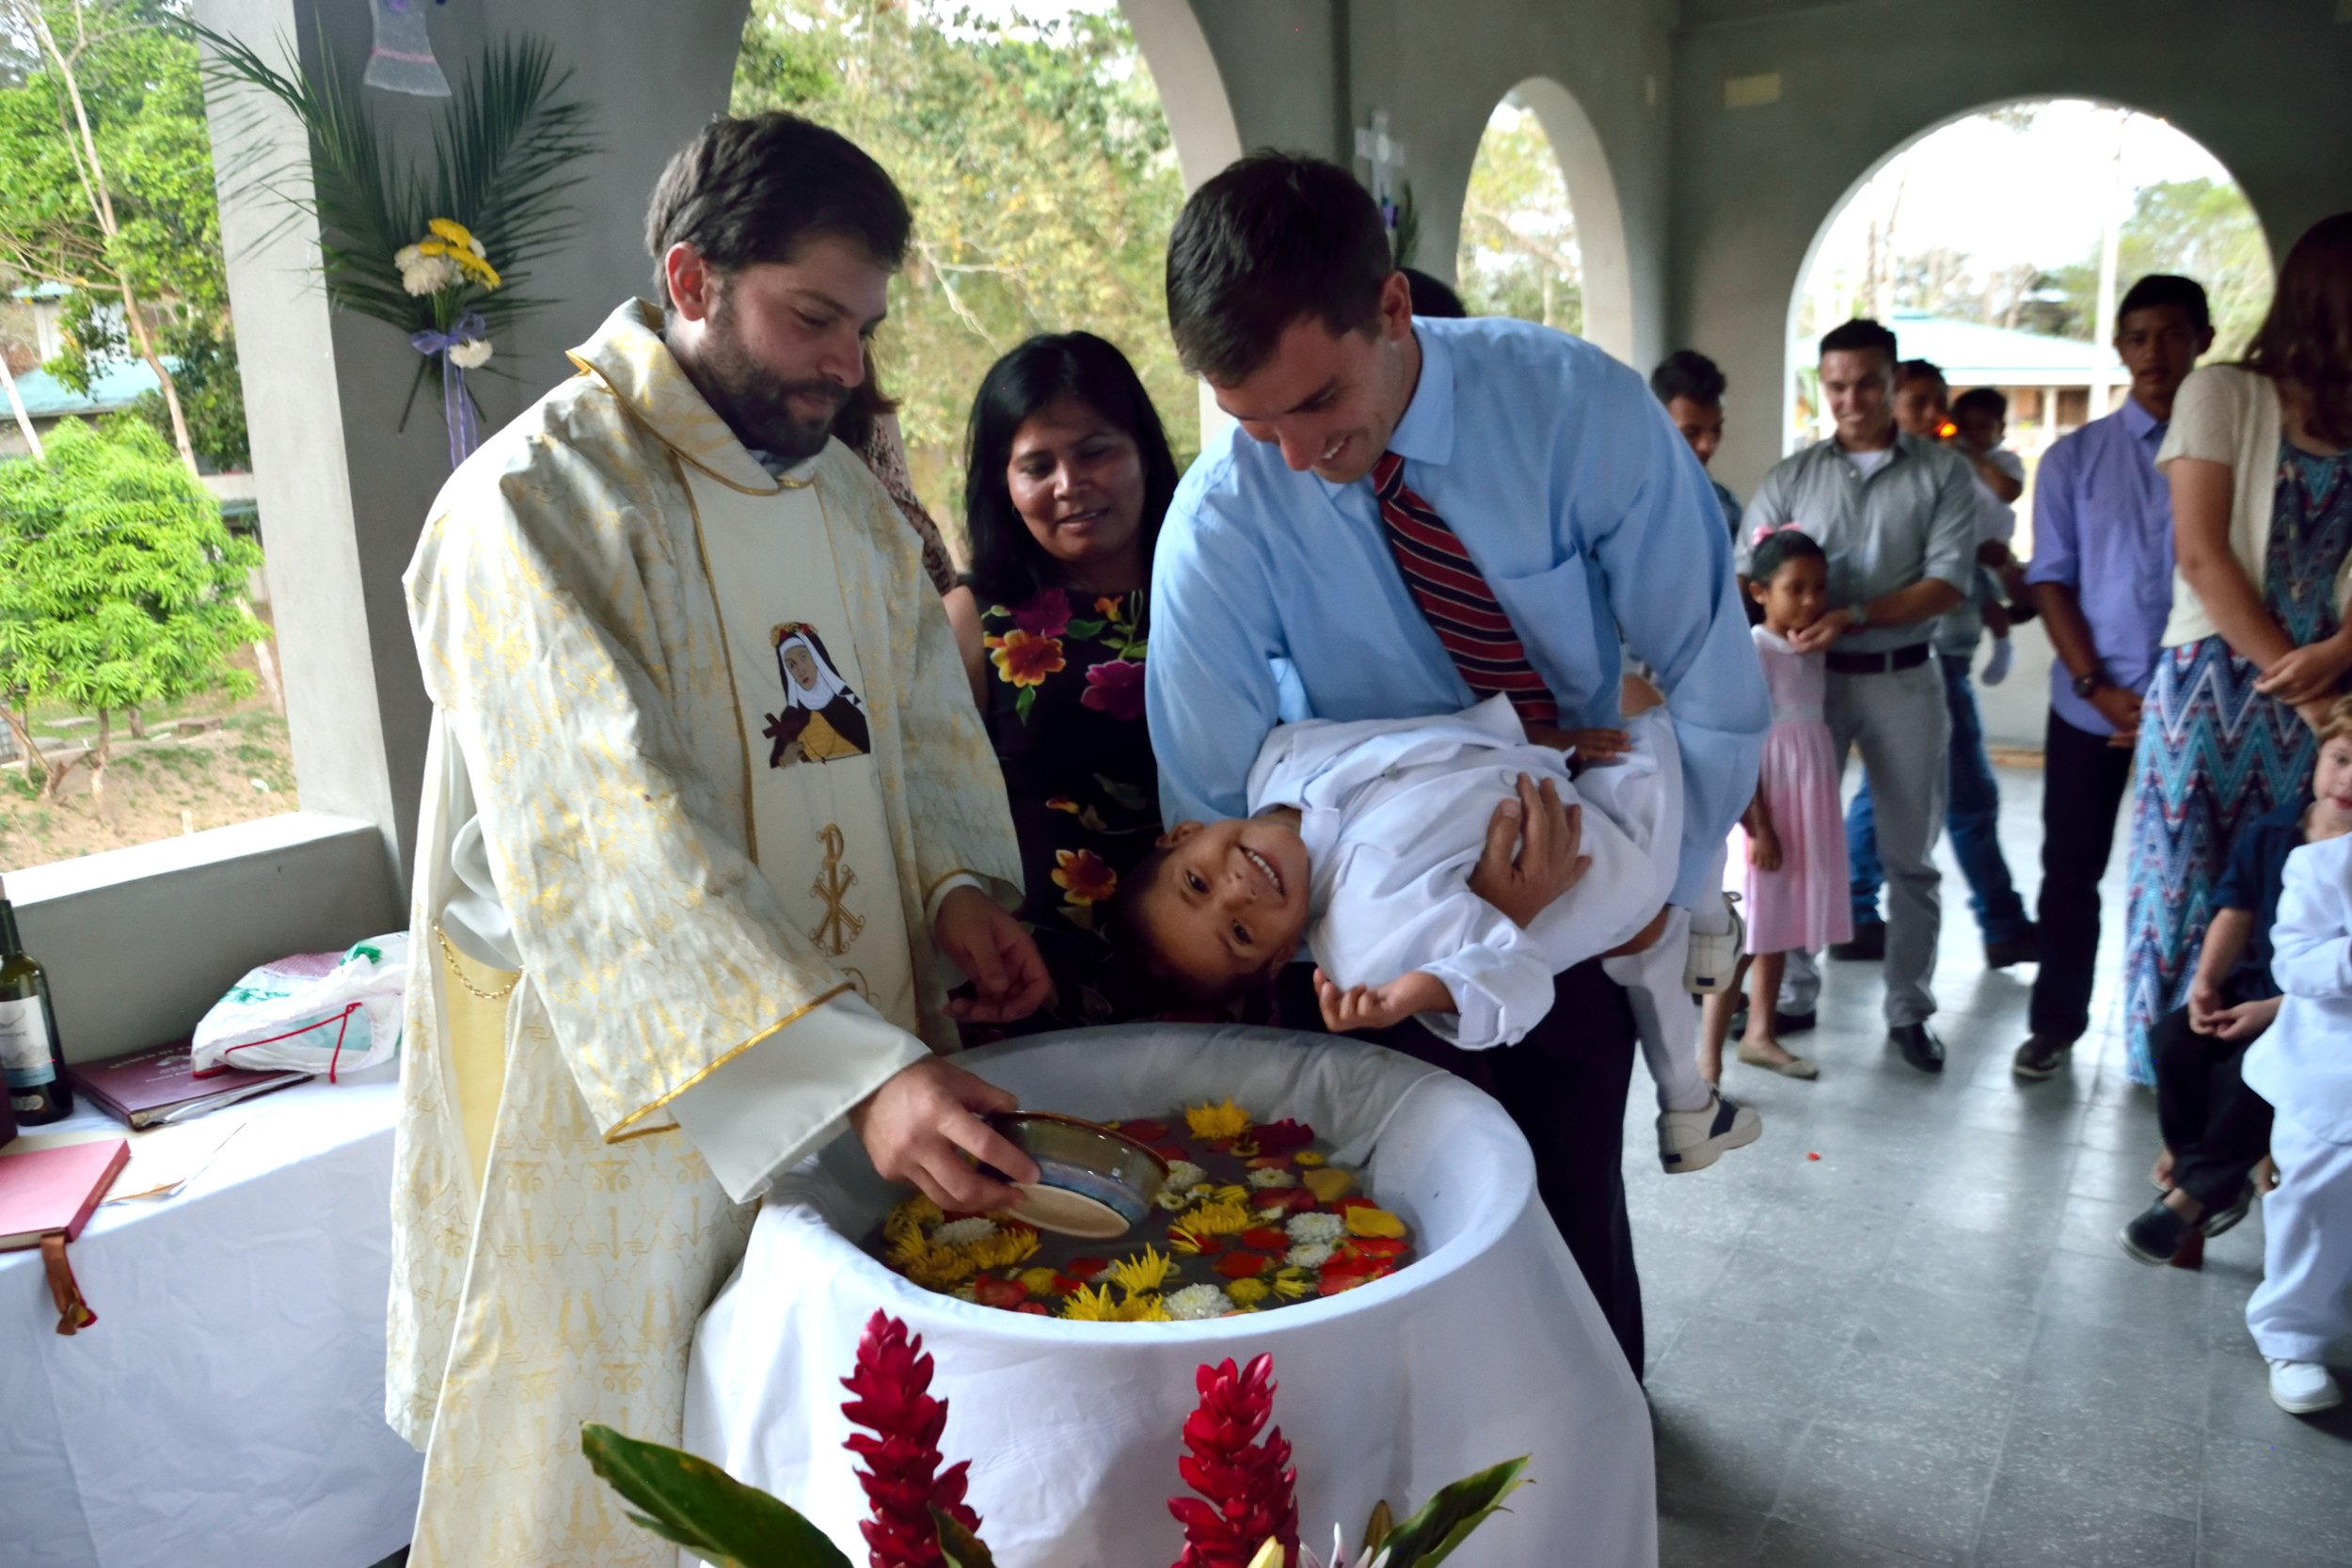 Alan with his godchild, one of our newest children, at the Easter mass in April 2017.